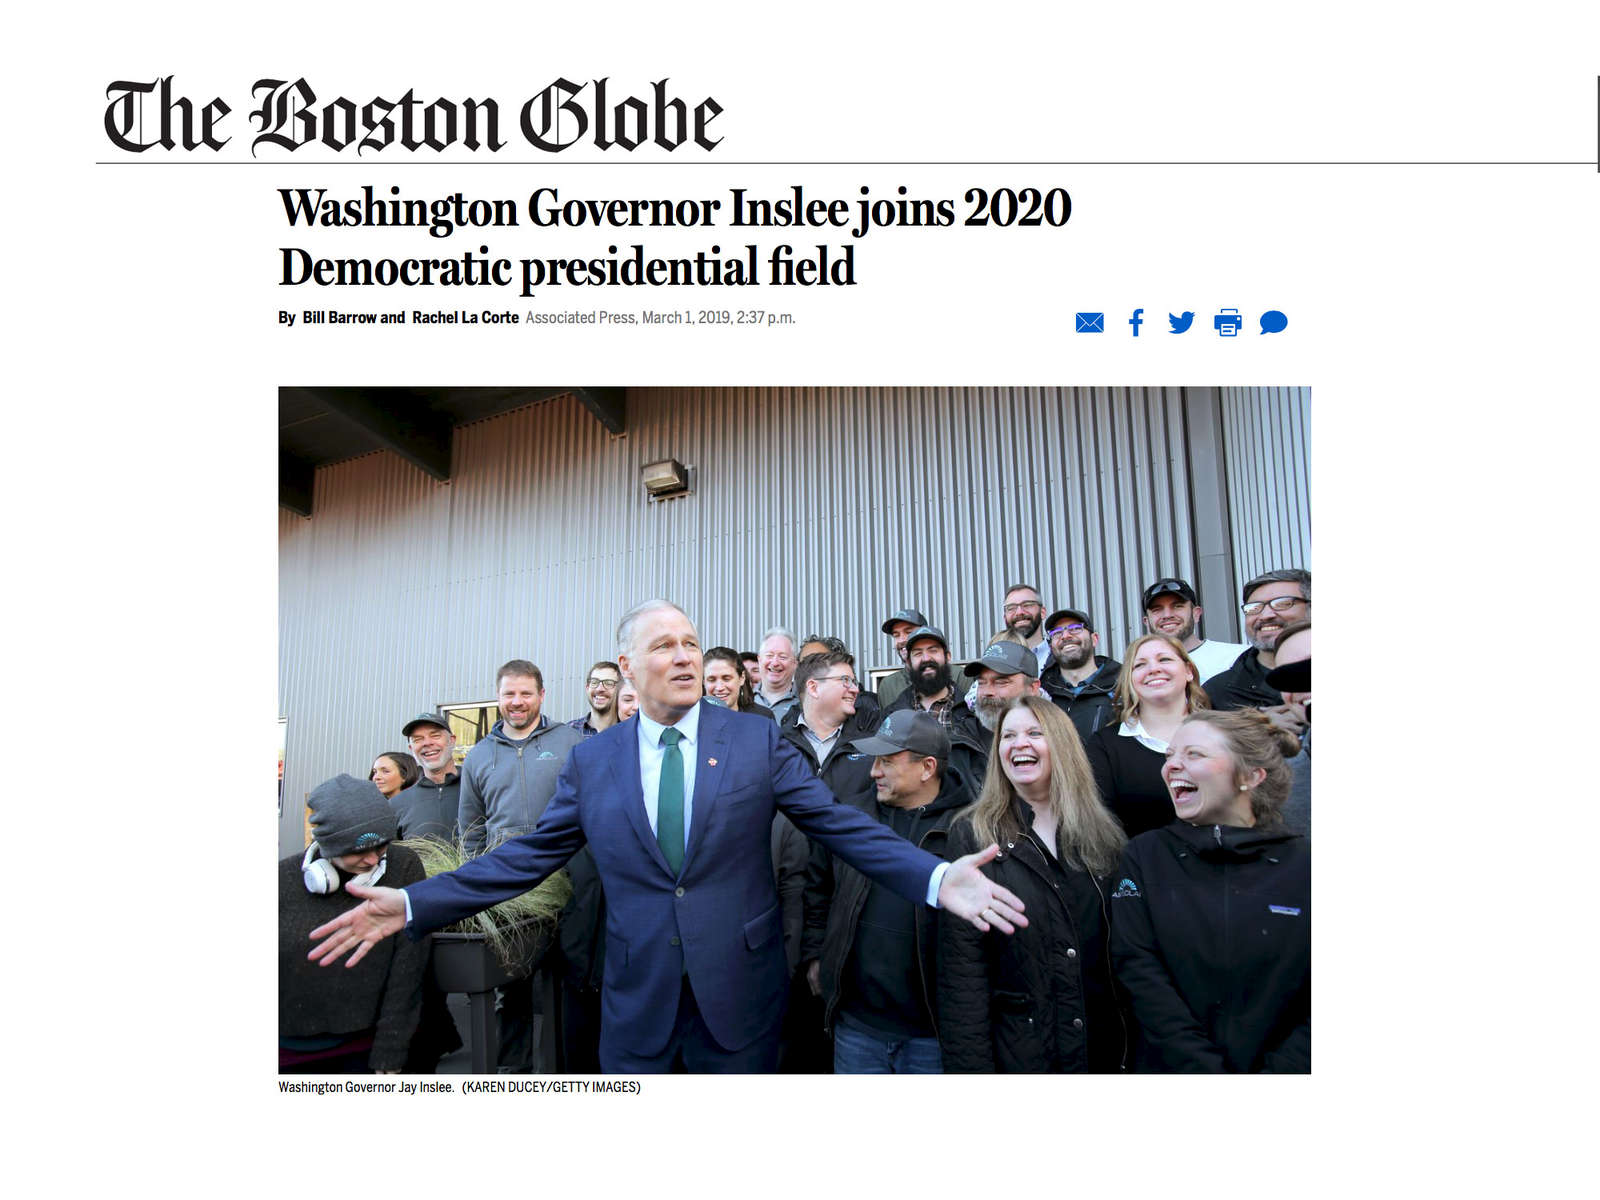 Washington Governor Inslee joins 2020 Democratic presidential field.  Photos for Getty Images March 1, 2019.